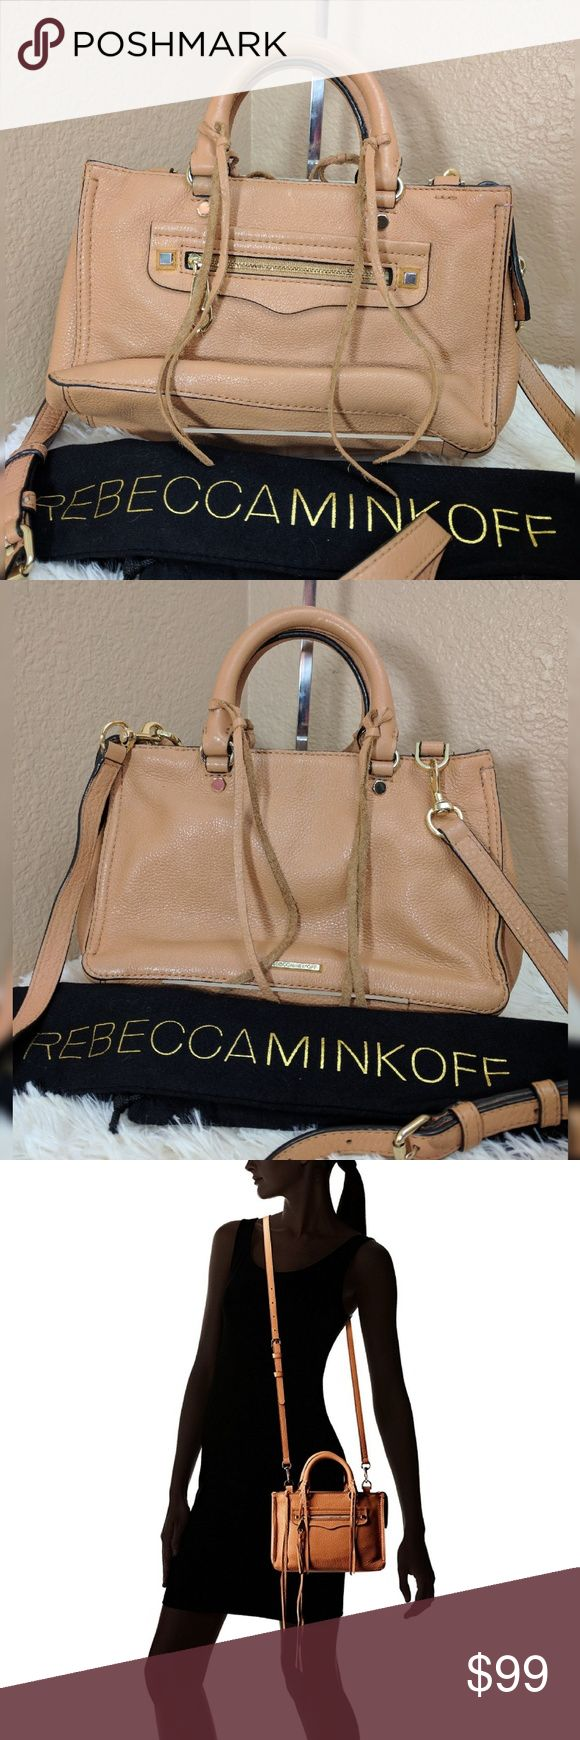 "Rebecca Minkoff Micro Regan Satchel Butter Rum Cowhide Leather  Imported  Synthetic lining  Zipper closure  25"" shoulder drop  6.25"" high  9.5"" wide  Micro top-handle bag in pebbled leather featuring long fringe at zipper pulls and handle fobs  Removable/adjustable cross-body strap  9.4 x 3.1 x 6.7 inches  Stitching repaired on two corners see last photo for example.  Otherwise excellent condition. Rebecca Minkoff Bags Crossbody Bags"